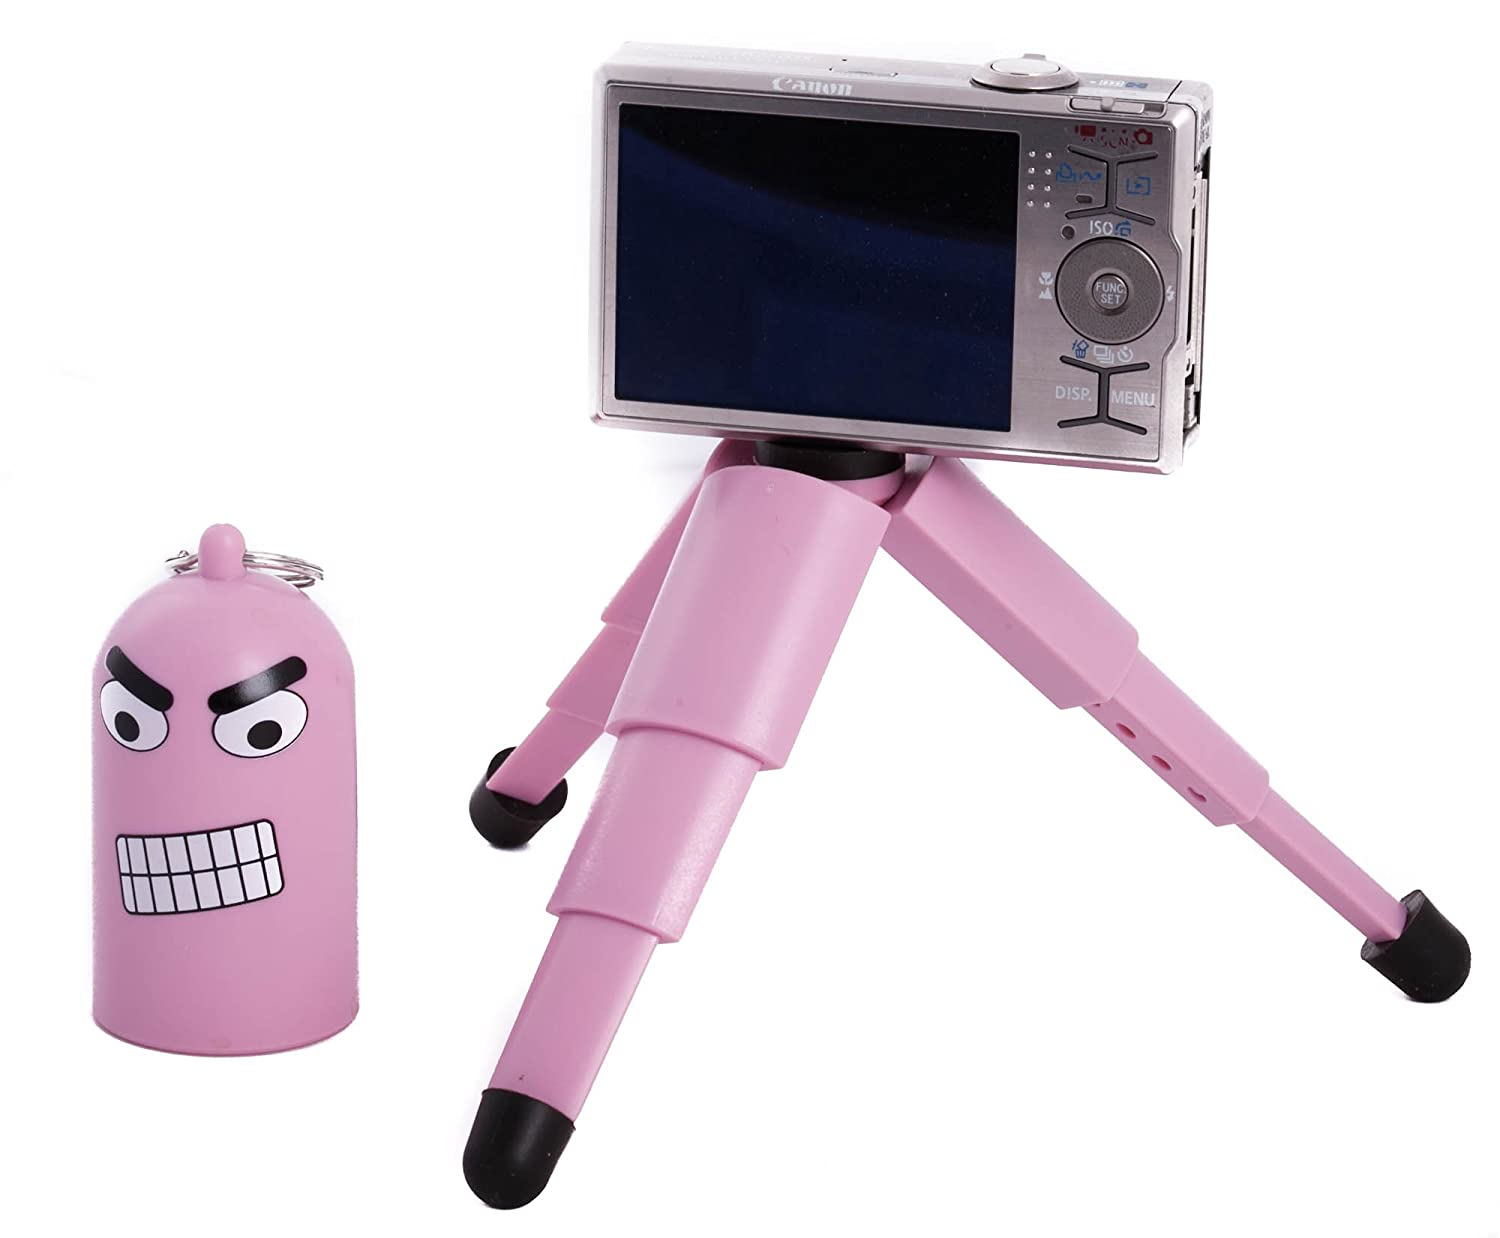 Pink Cartoon Mini Tabletop Adjustable Keychain Tripod for Digital Camera